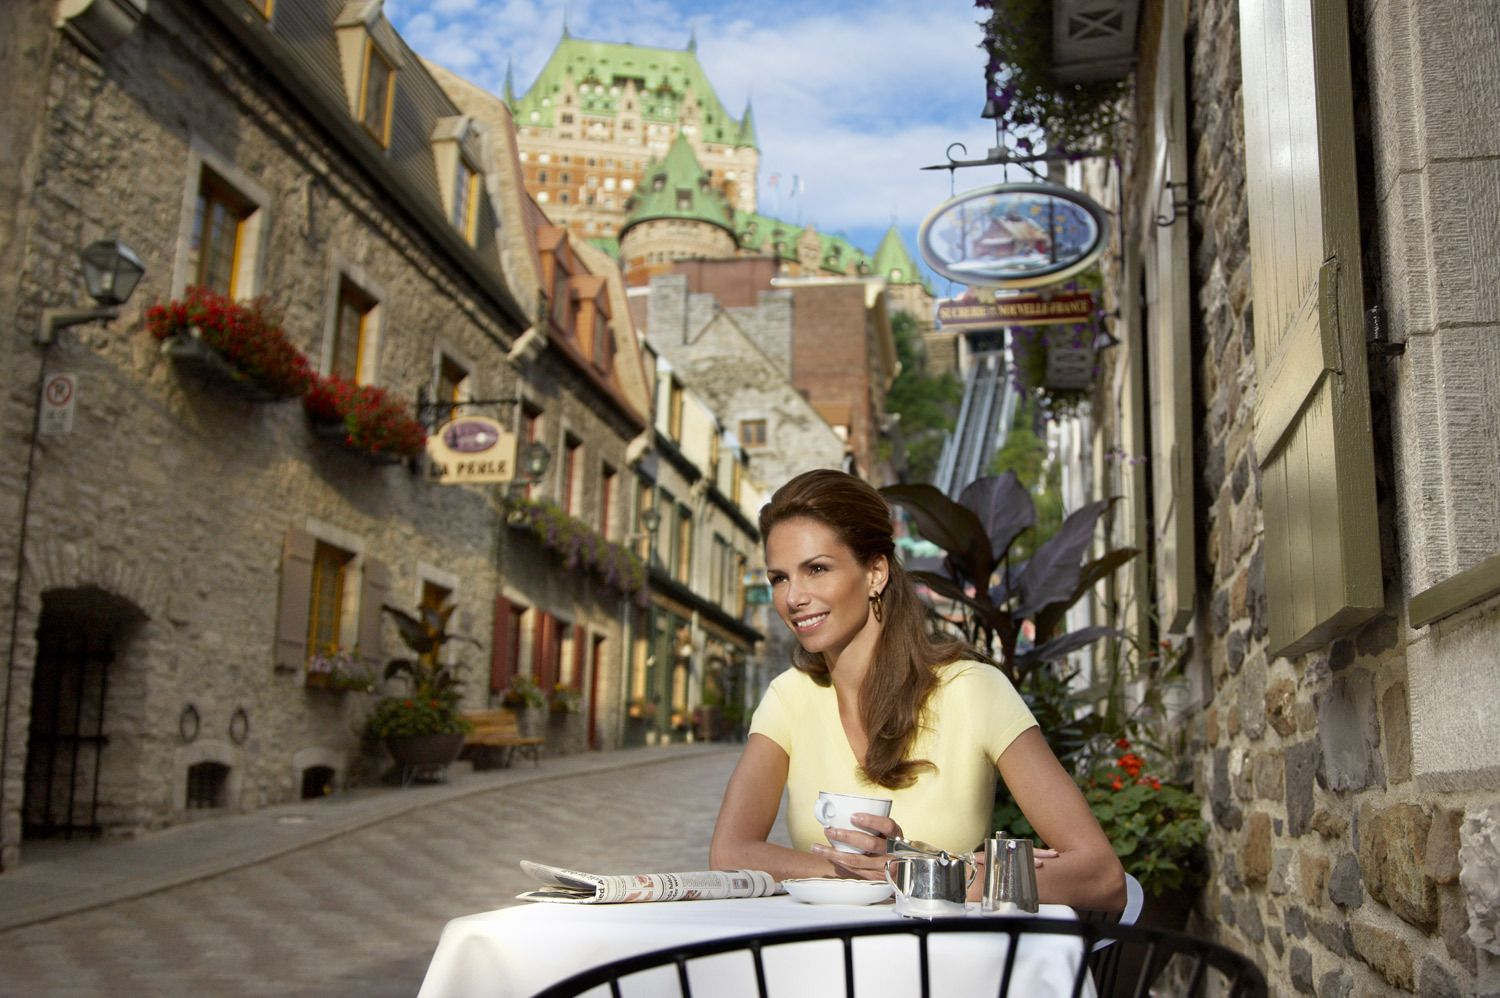 Fairmont Hotels and Resorts - Le Chateau Frontenac